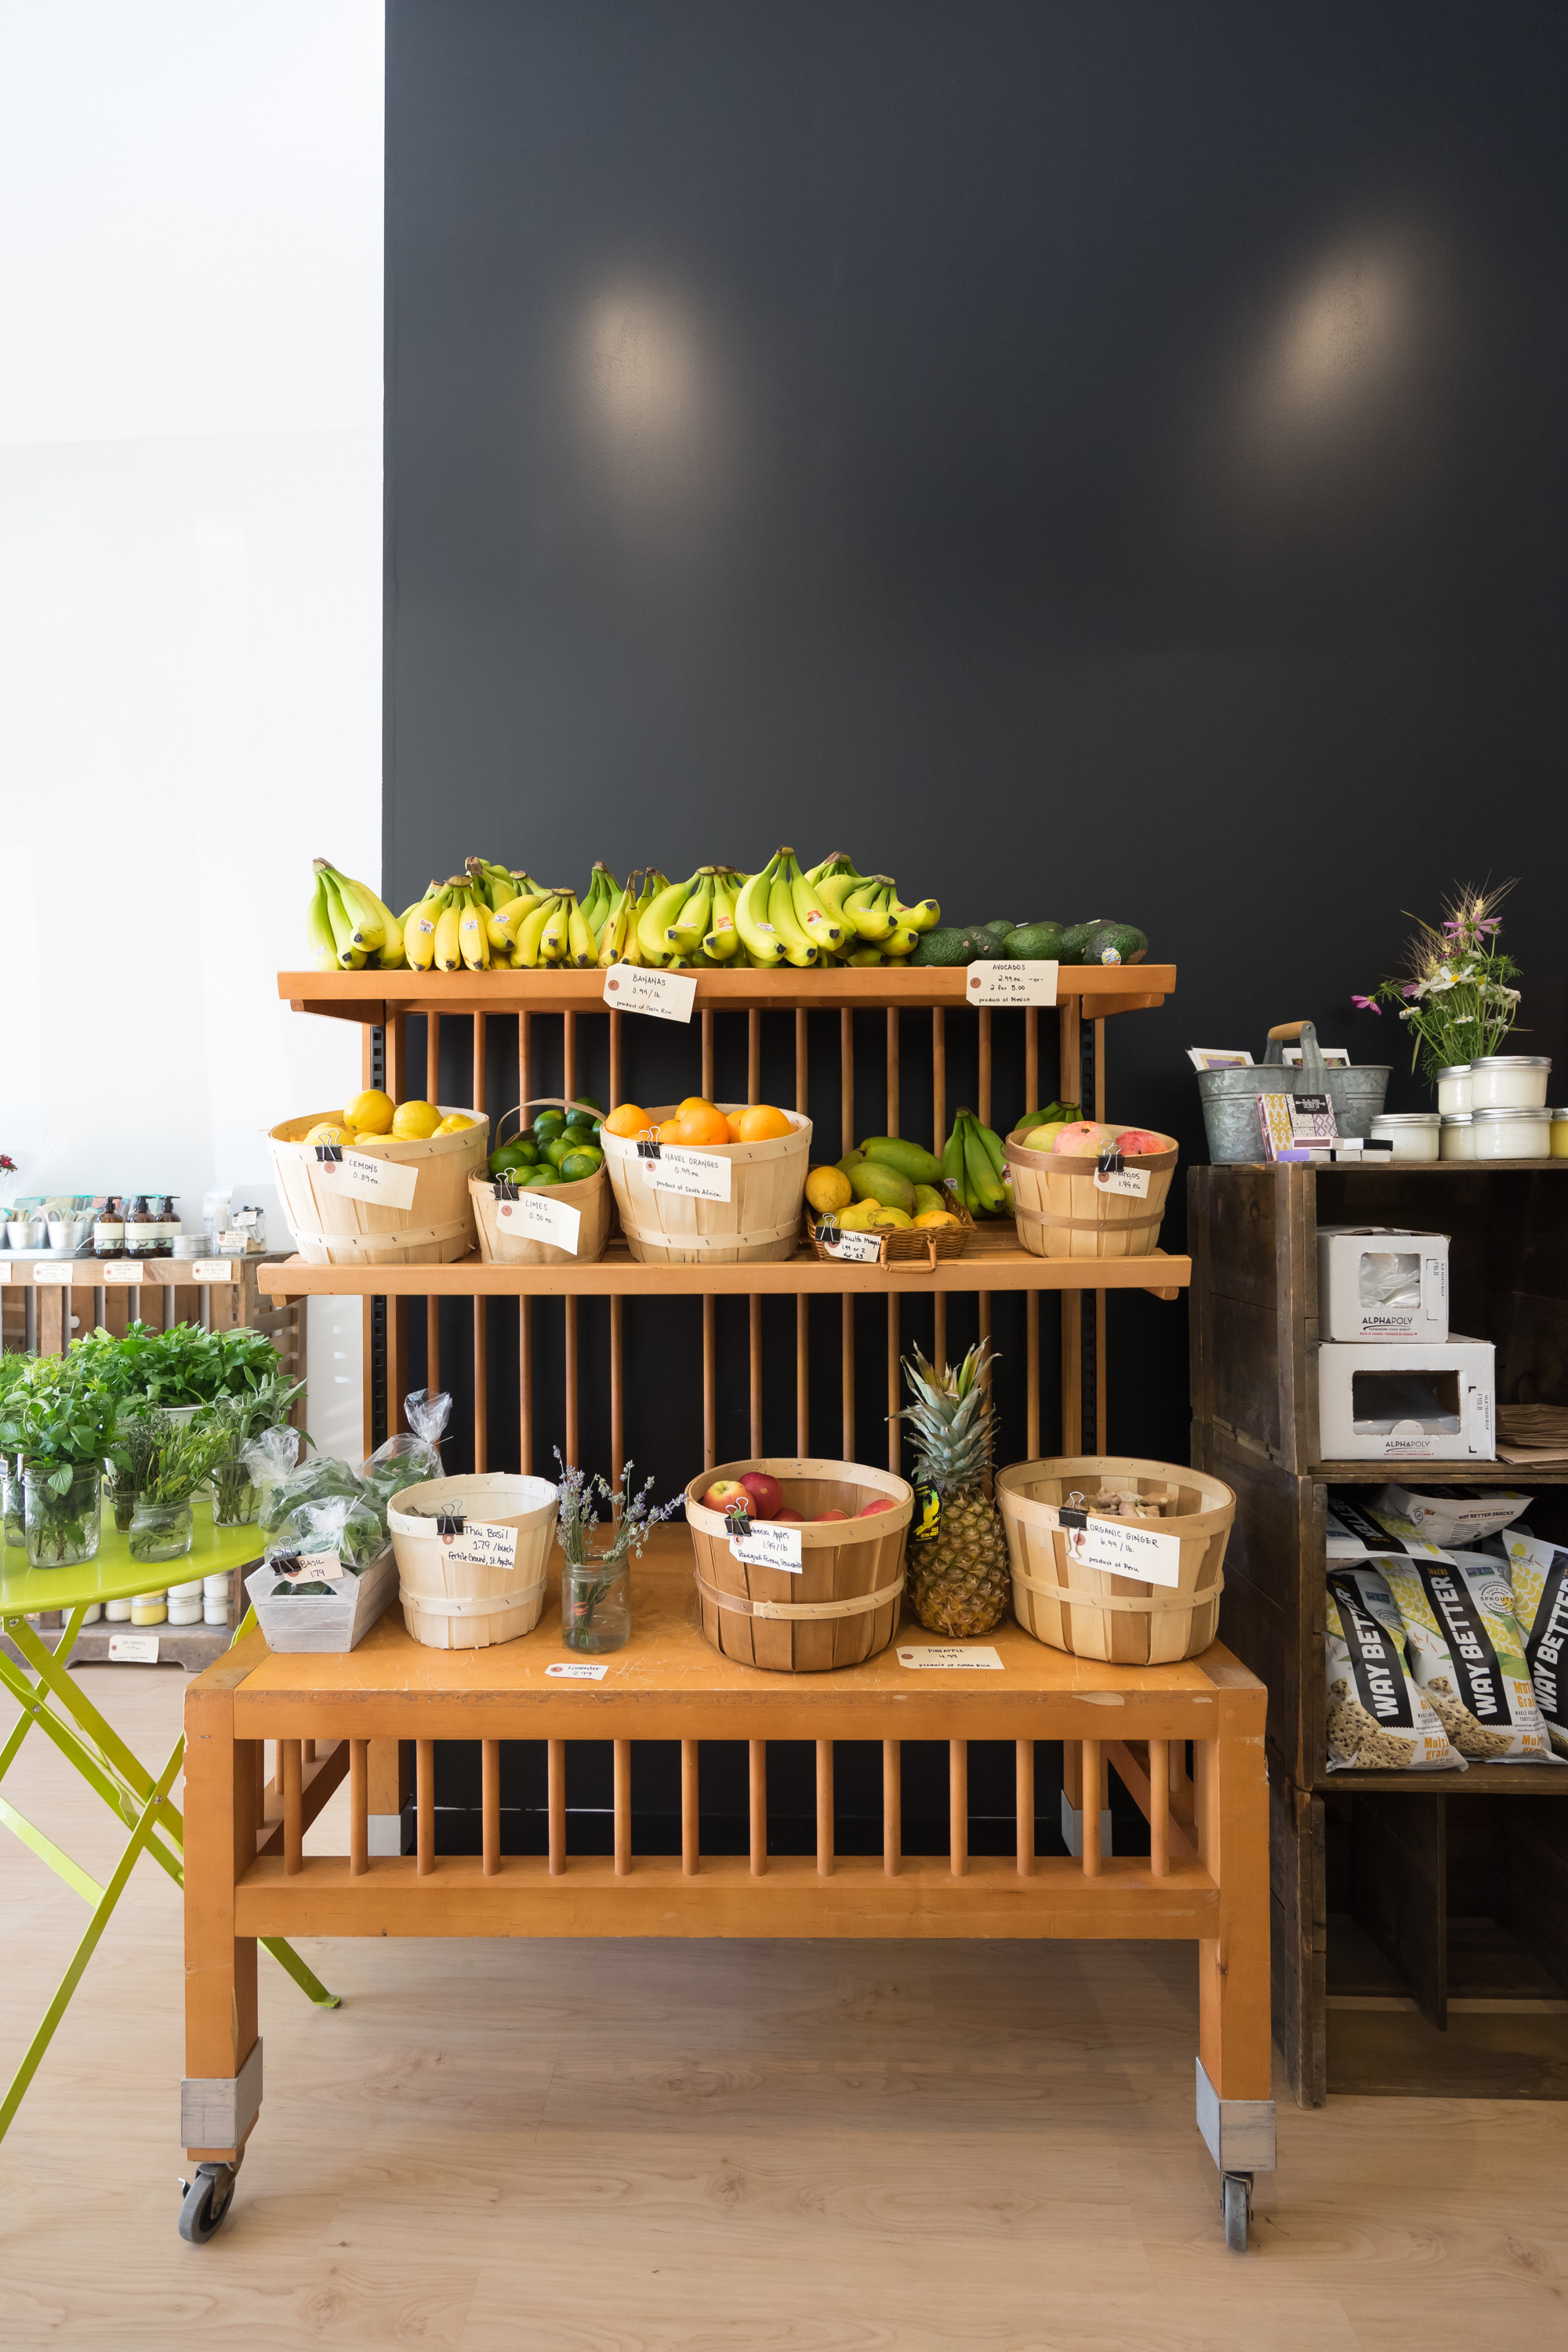 """b5d8c89d1063 Dolson described her business as a """"green grocer,"""" a term more familiar in  Europe, denoting a small independent grocer that focuses on providing local  ..."""